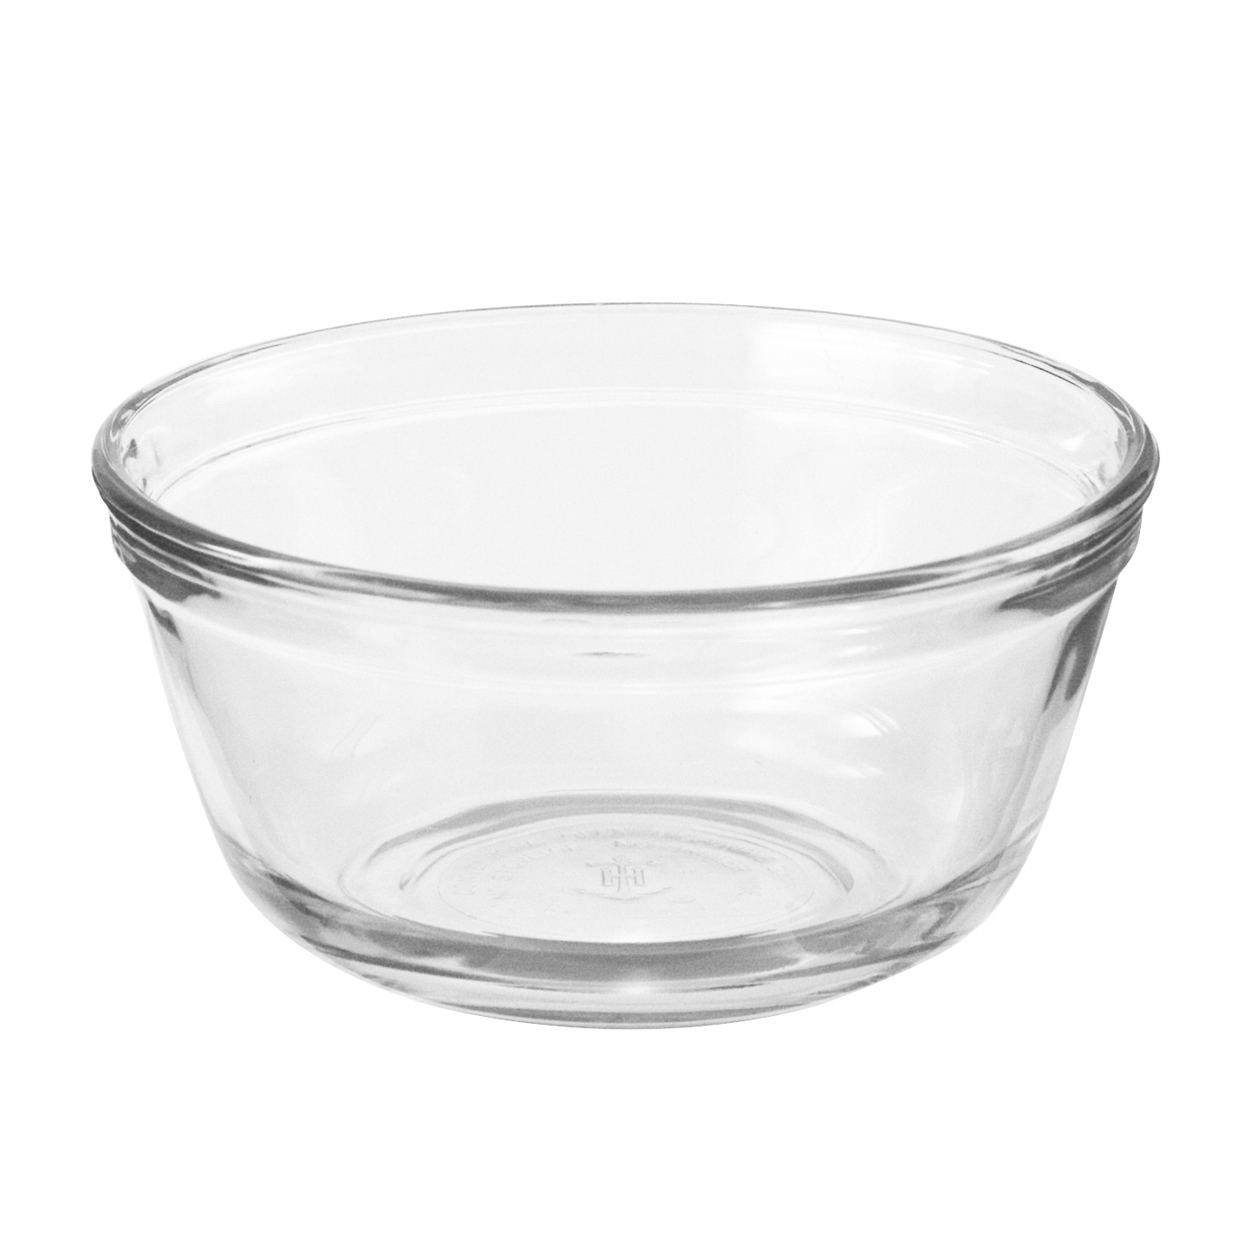 Anchor Hocking Foodservice 81575AHG18 mixing bowl, glass